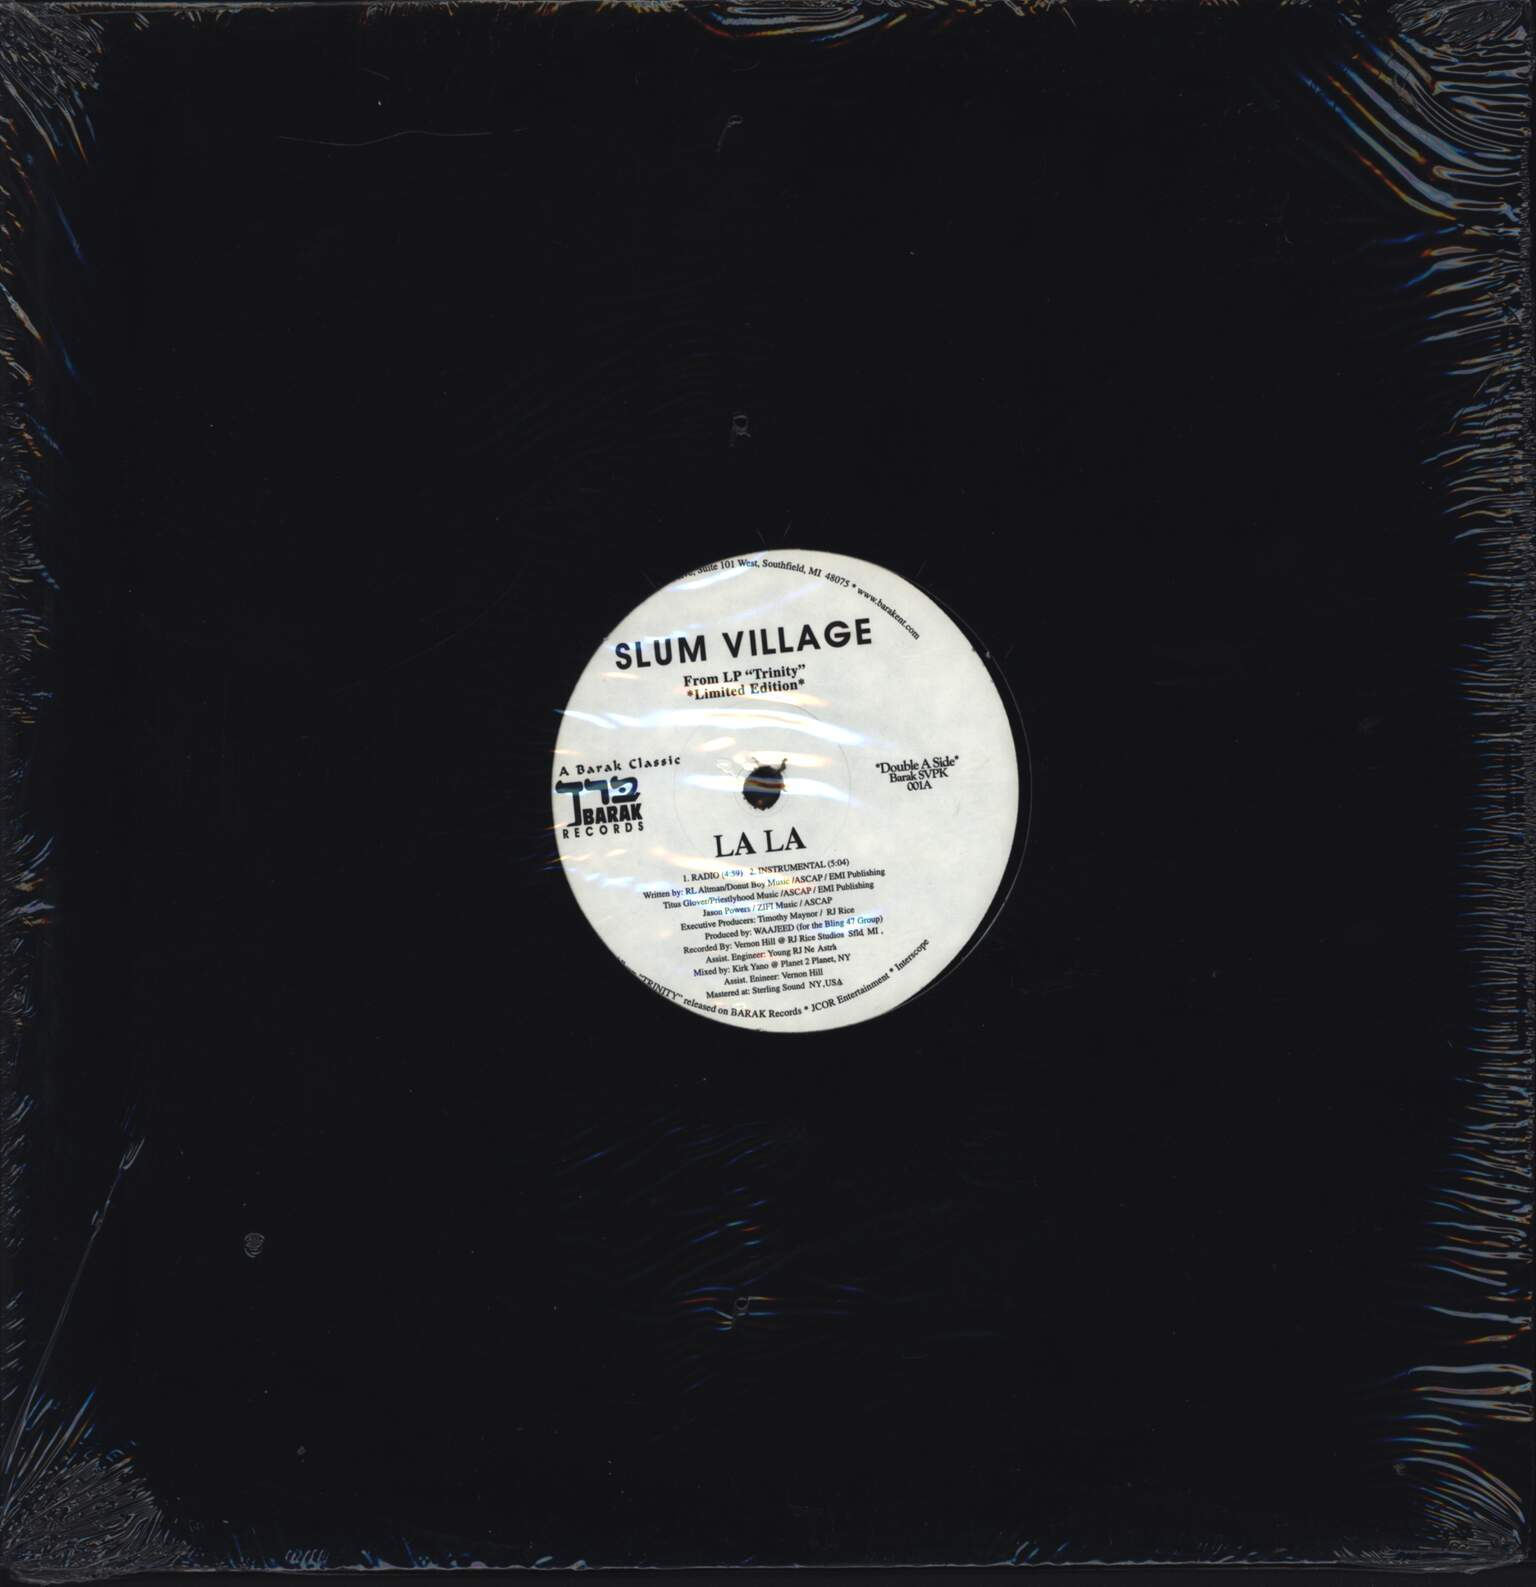 "Slum Village: La La / Club Banger, 12"" Maxi Single (Vinyl)"